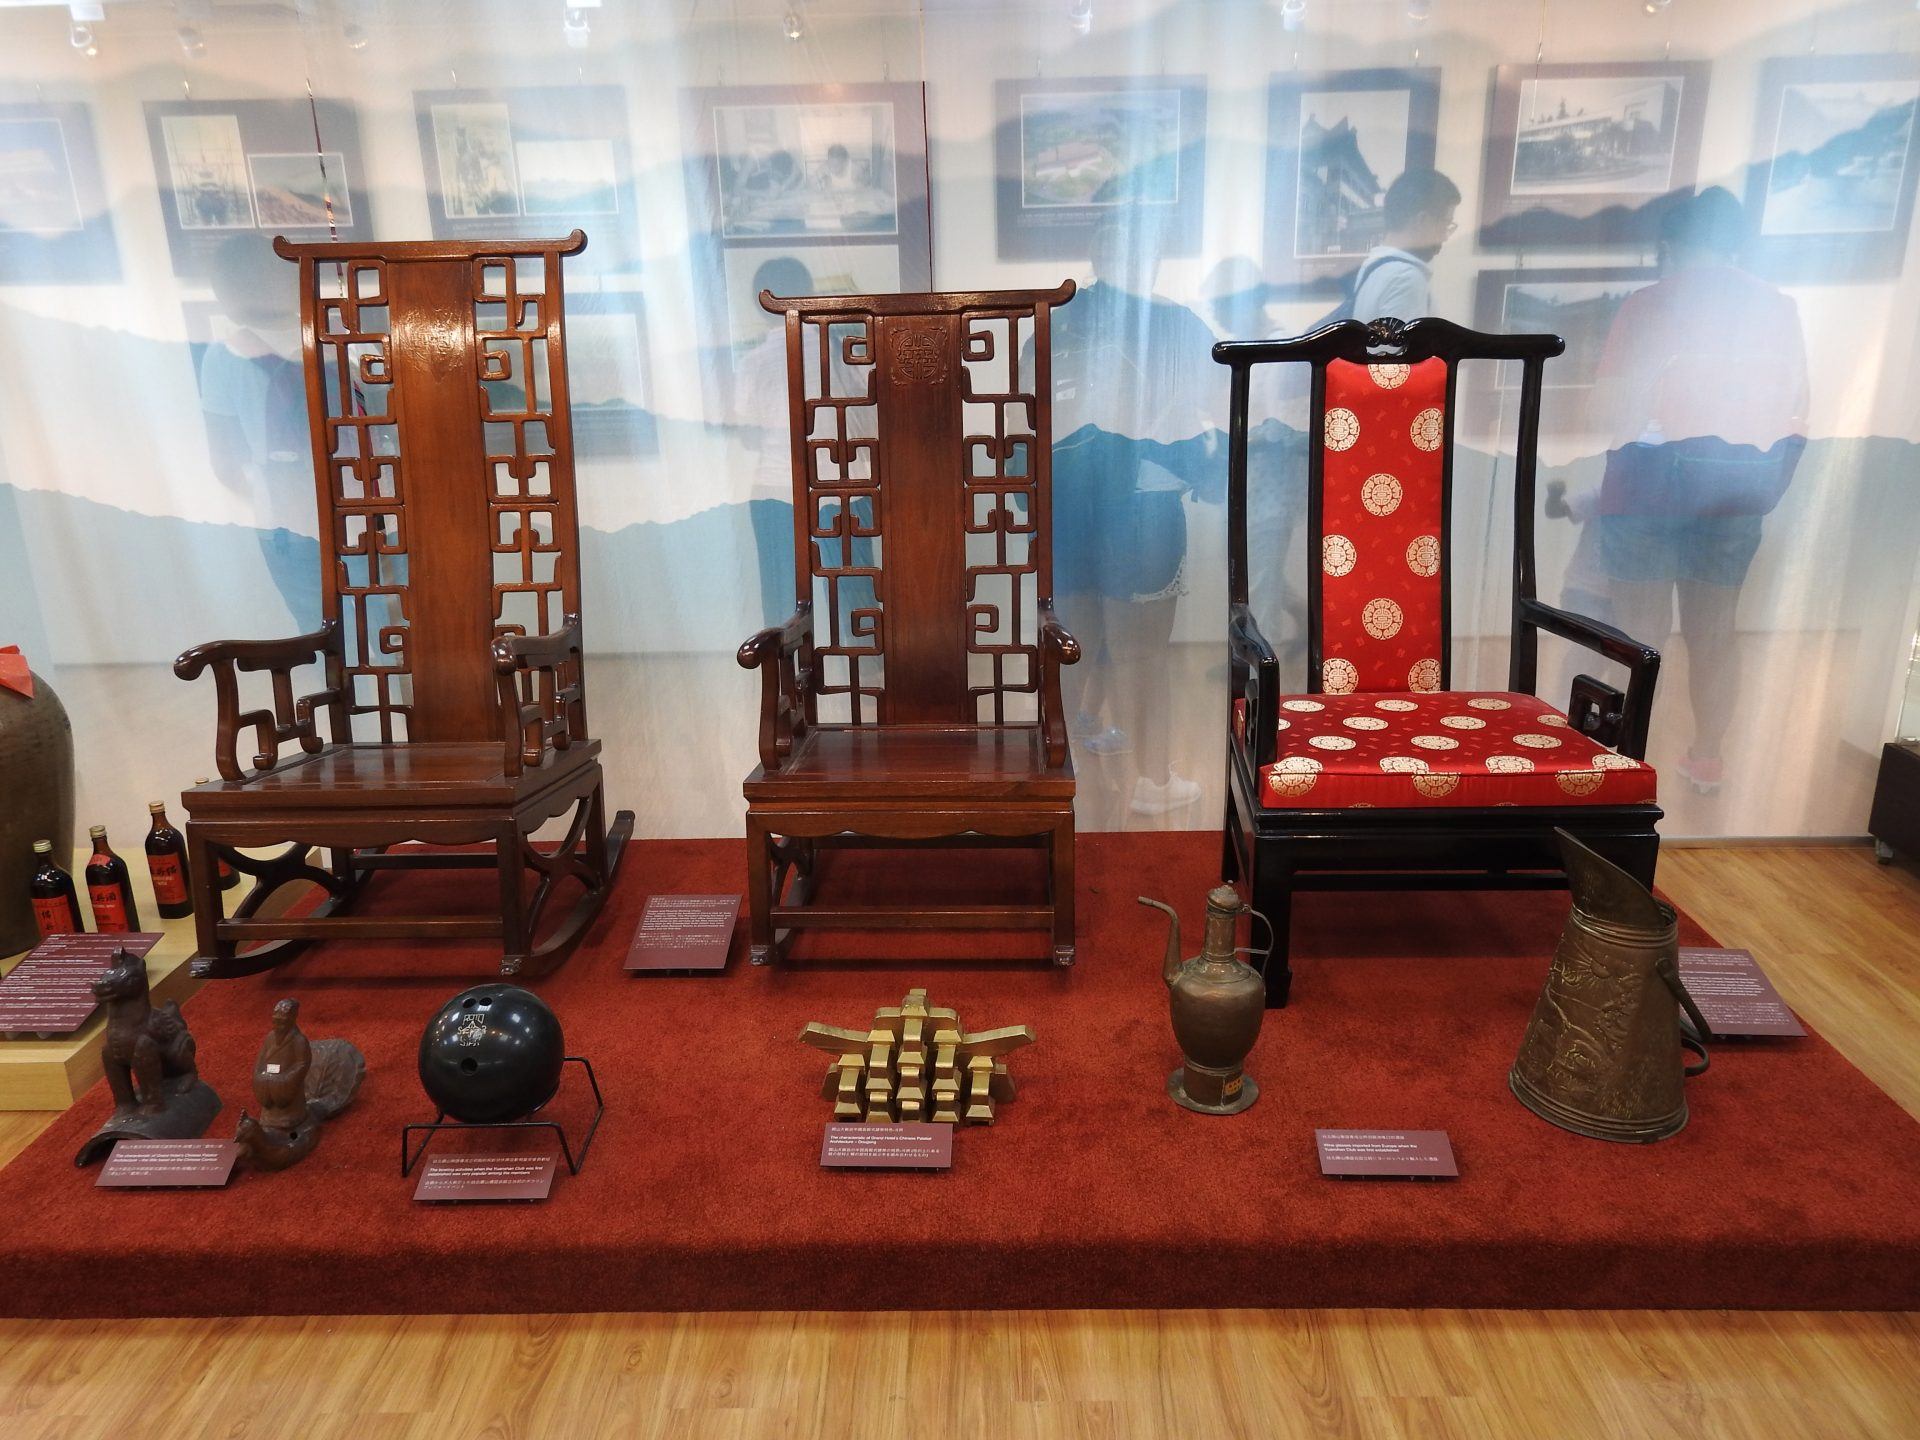 """The """"Important VIP Chairs"""" especially designed for visiting King Tupou IV of the Kingdom of Tonga are displayed at the Grand Hotel Museum. (Image: Billy Shyu/ Vision Times)"""